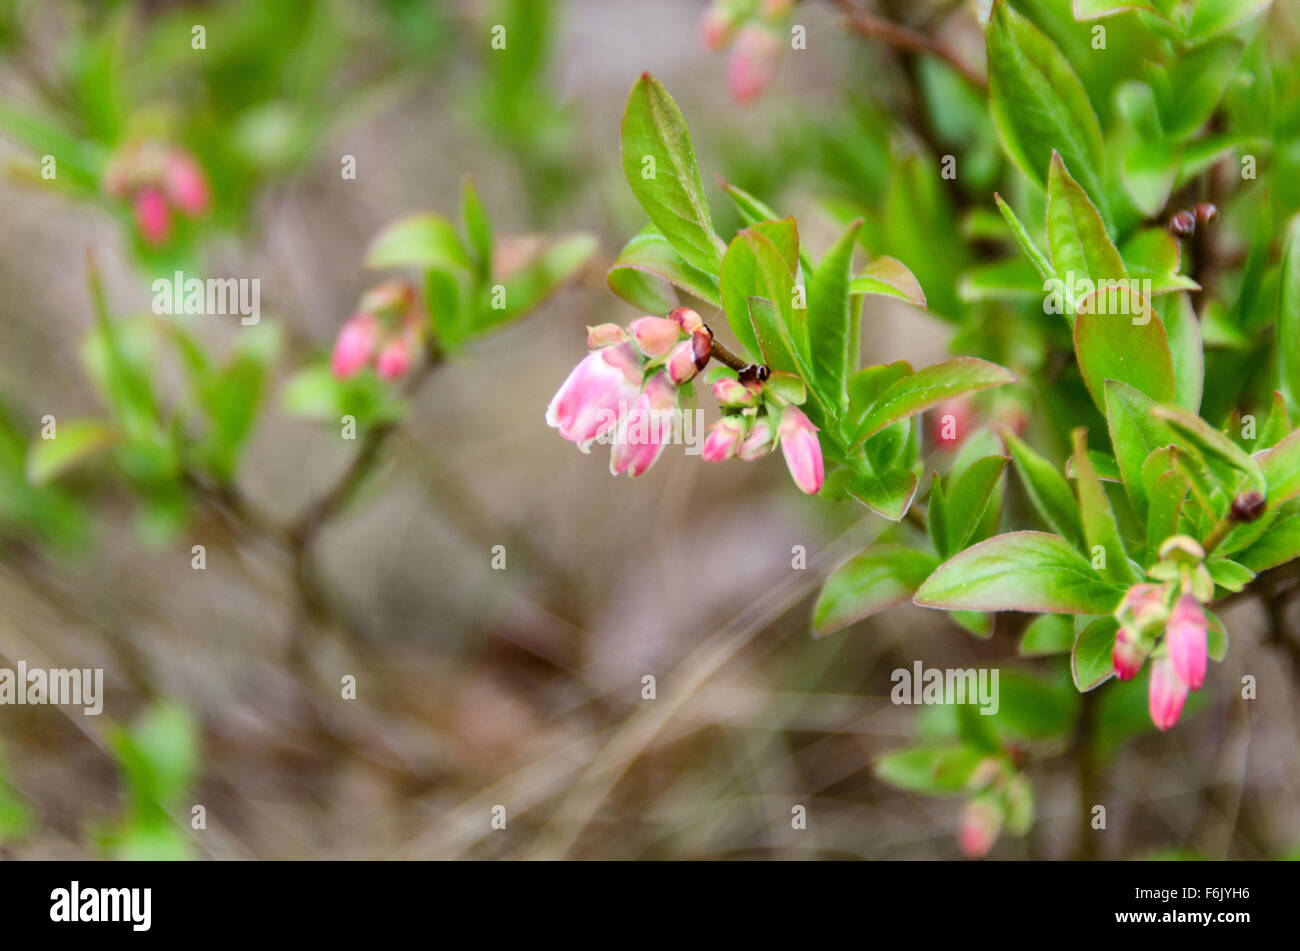 Close-up view of wild lowbush blueberry (Vaccinium angustifolium) flowers in May, Acadia National Park, Maine. - Stock Image